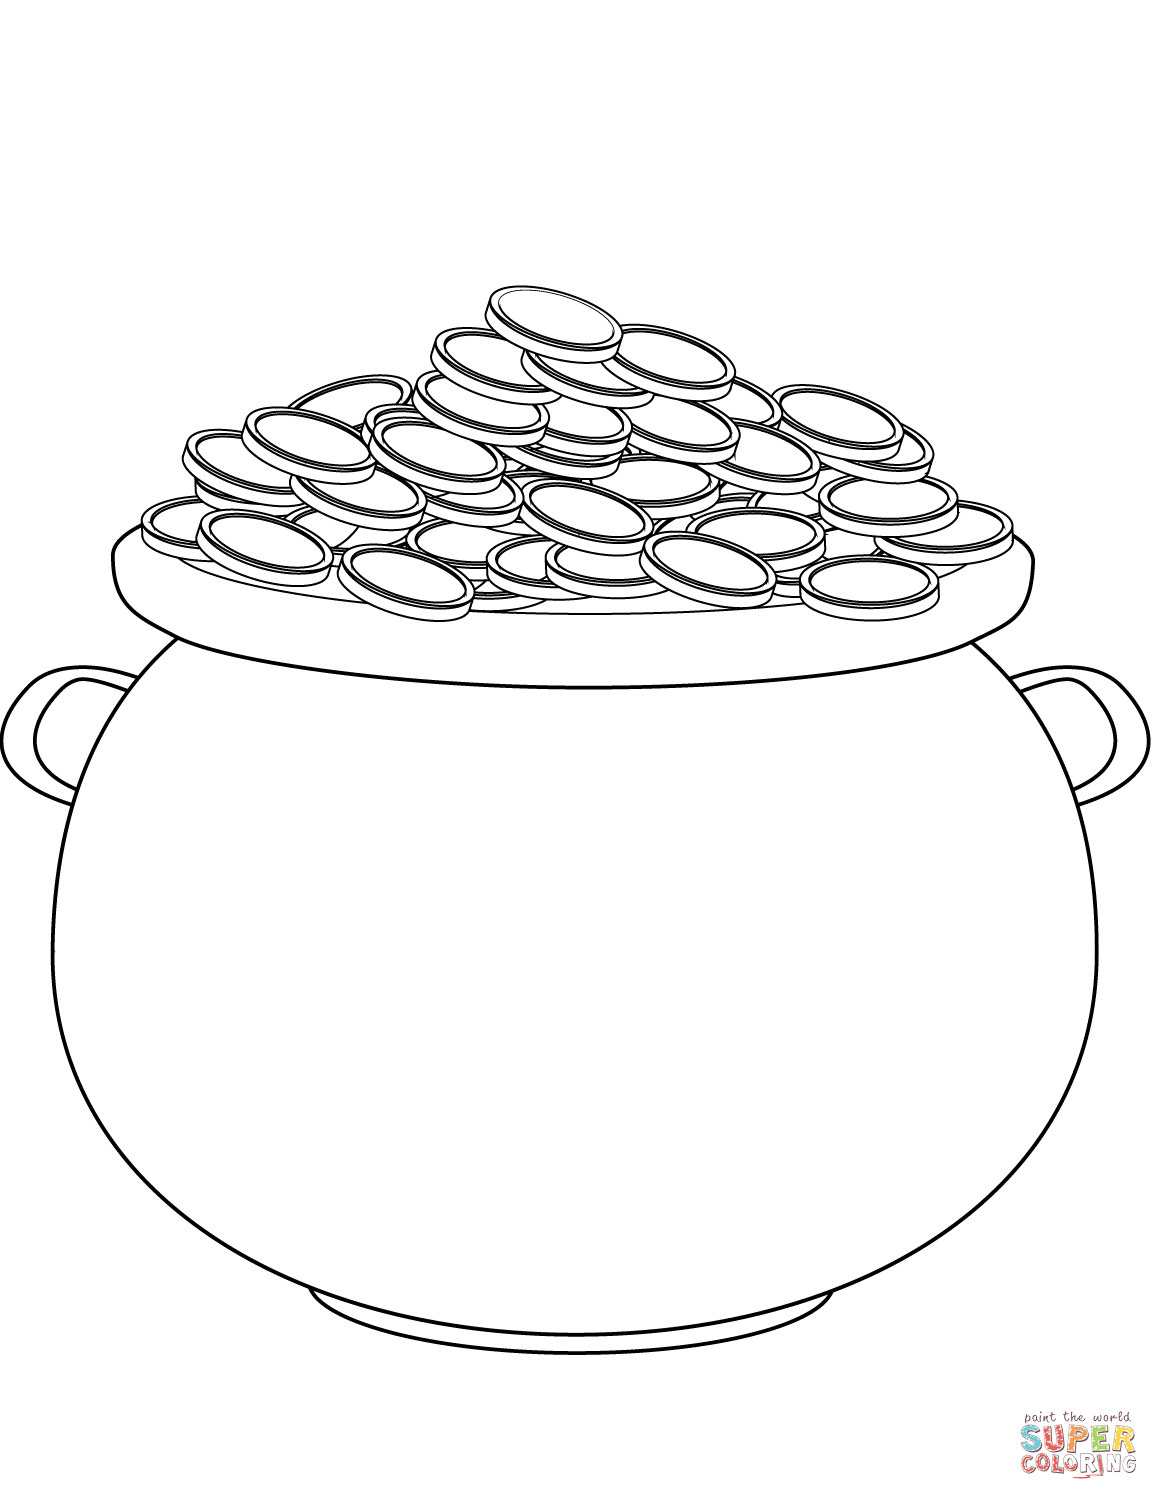 Saint Patrick's Day Pot Of Gold Coloring Page   Free Printable - Free Printable Pot Of Gold Coloring Pages